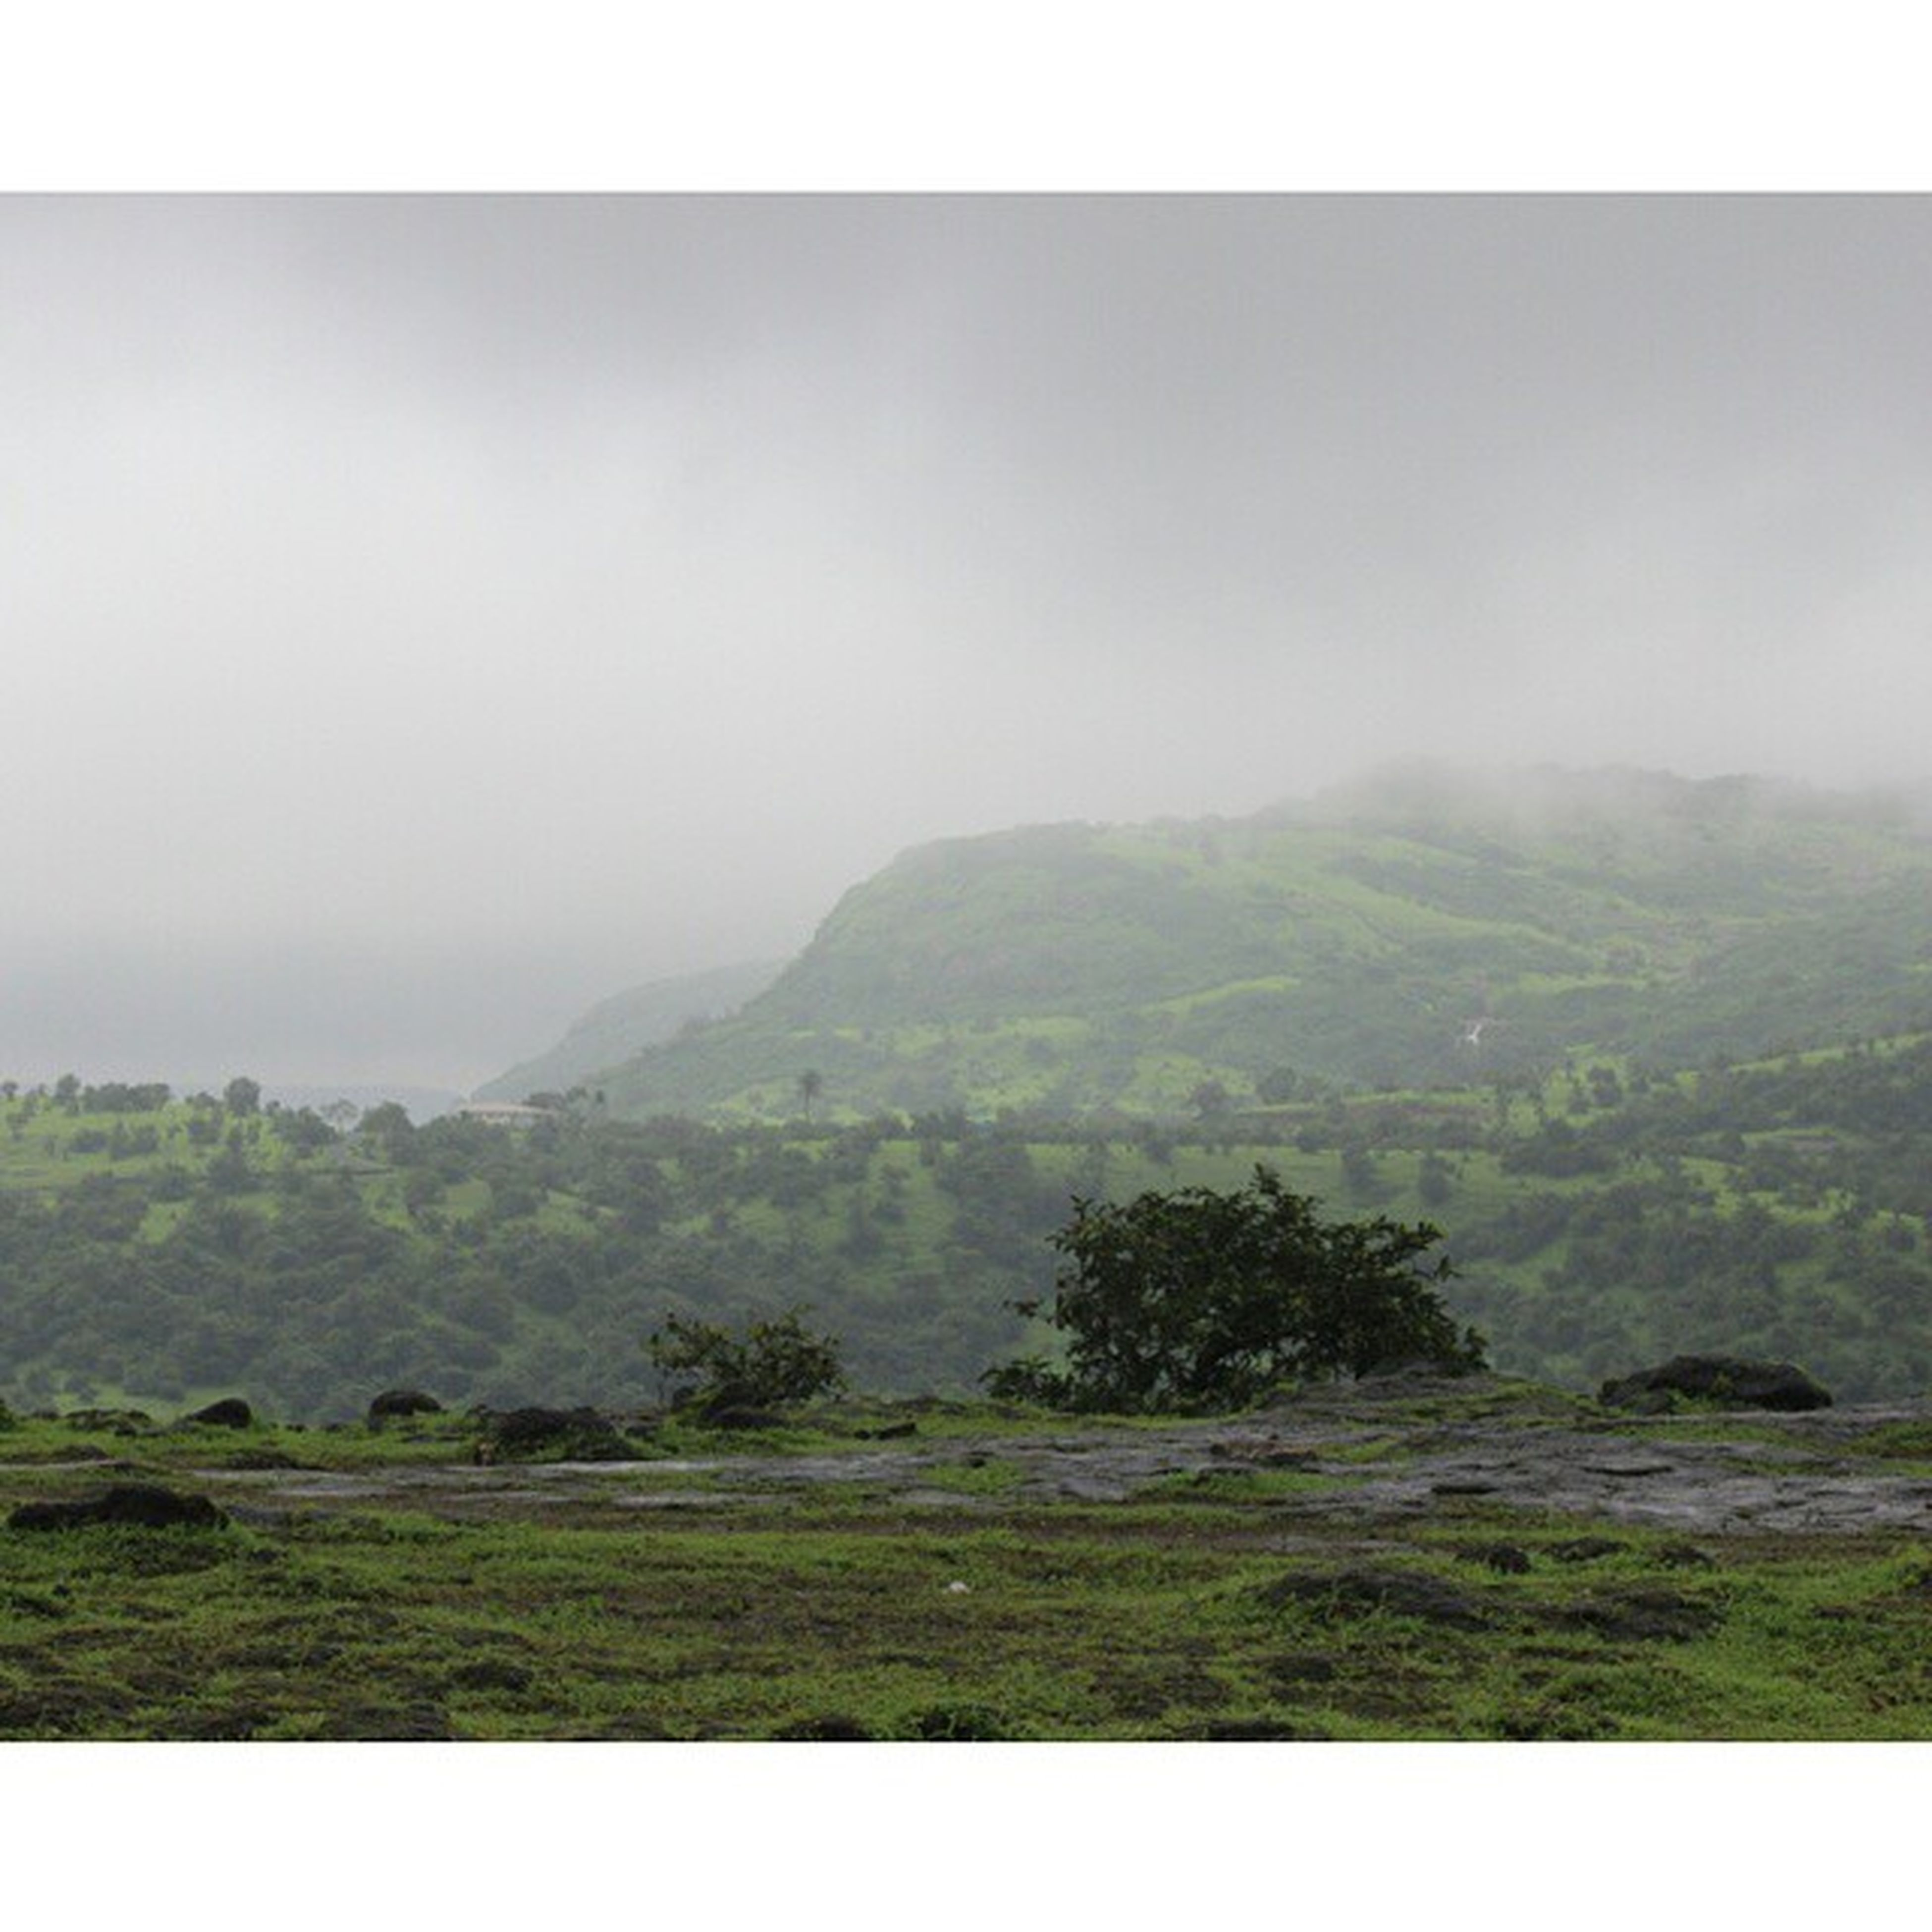 mountain, tranquil scene, tranquility, scenics, landscape, beauty in nature, transfer print, tree, nature, mountain range, auto post production filter, green color, sky, grass, non-urban scene, fog, idyllic, hill, growth, lush foliage